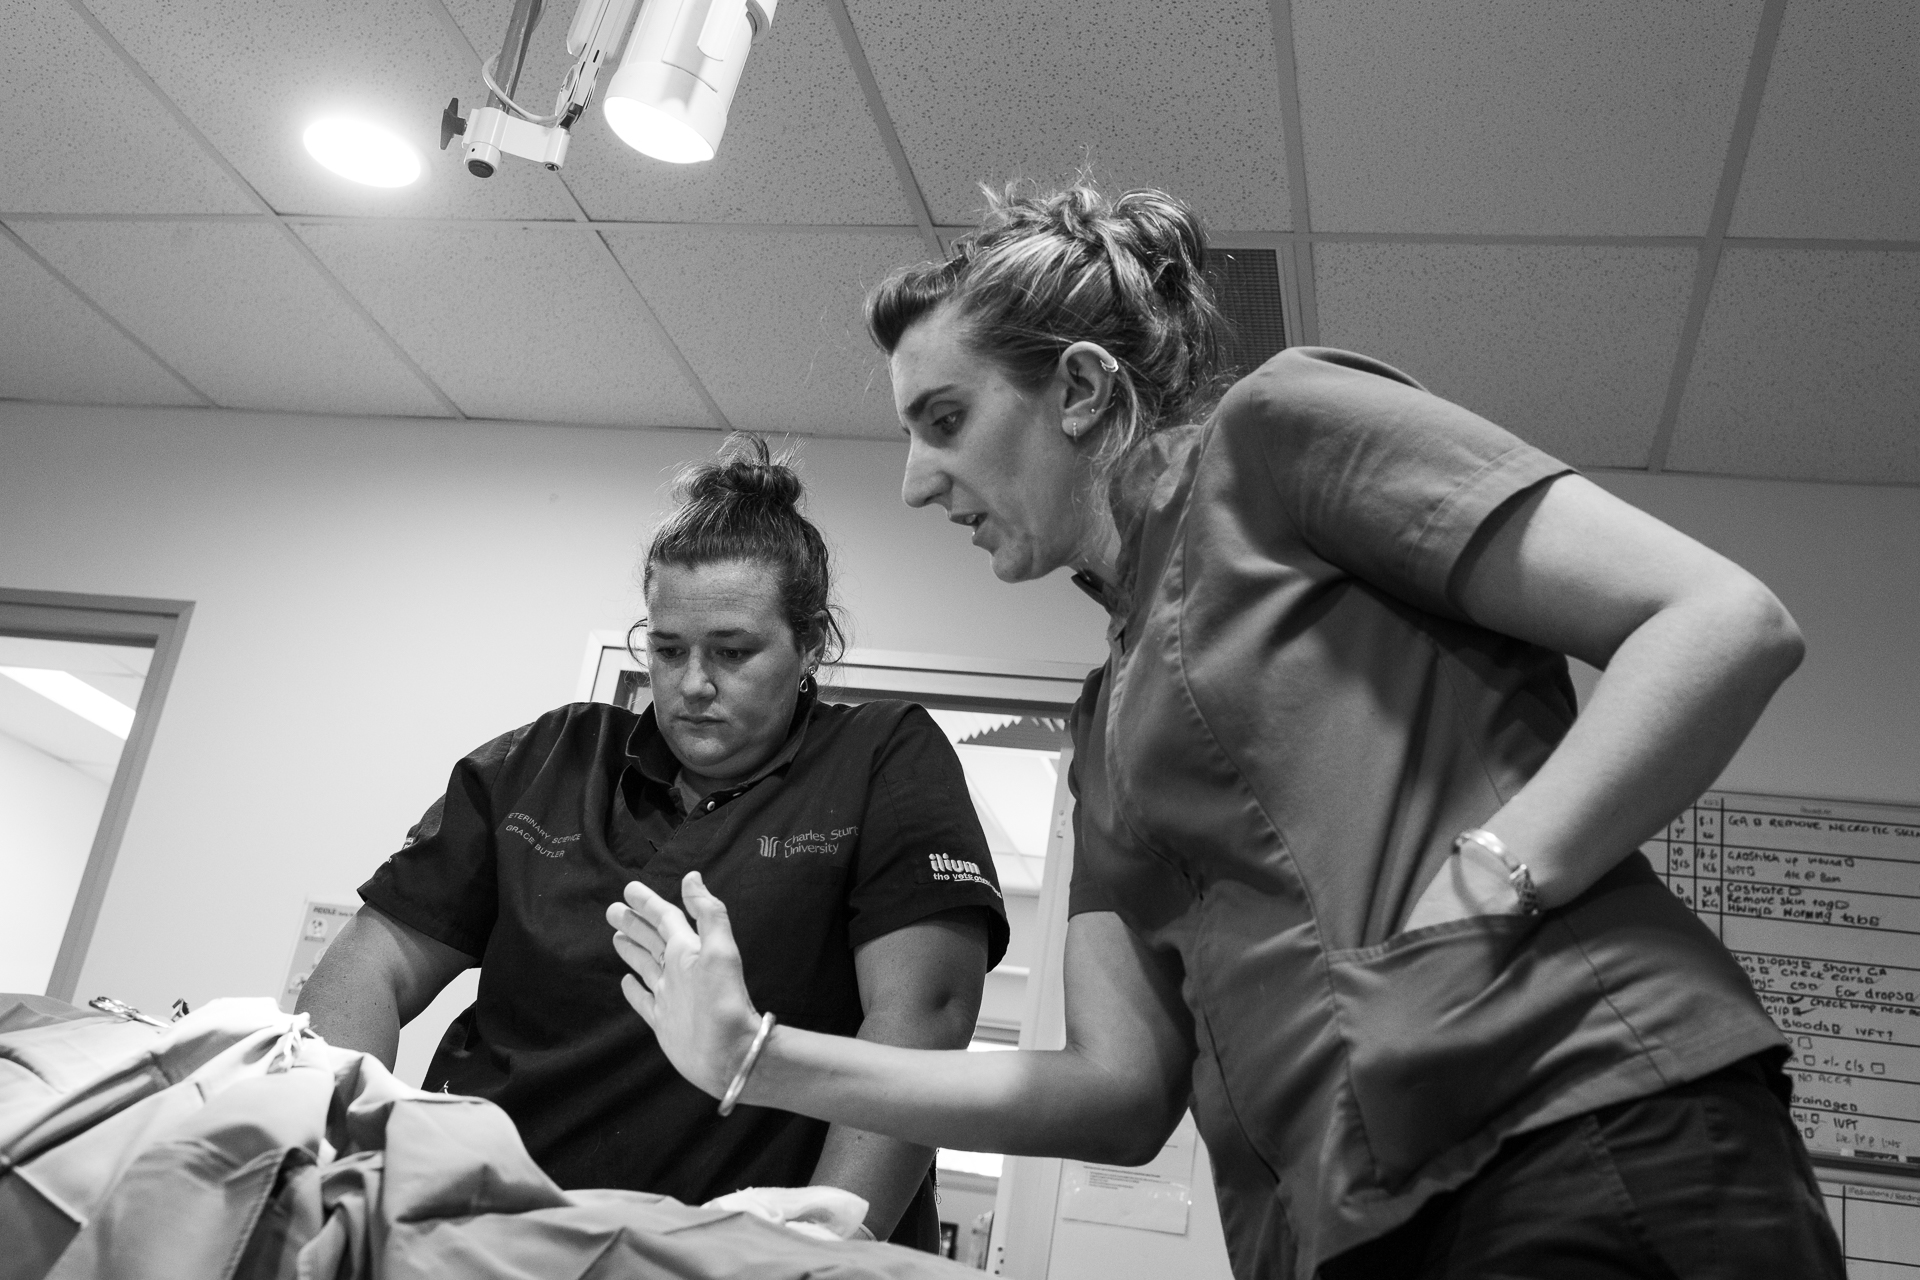 Dr Louise Grey (right) gives advice to Dr Grace Butler about suturing a fairly long incision. Butler, a new graduate in her first vet job, is performing her first major surgery: debridement of necrotic tissue from a cat after a dog bite.  24 January, 2018.